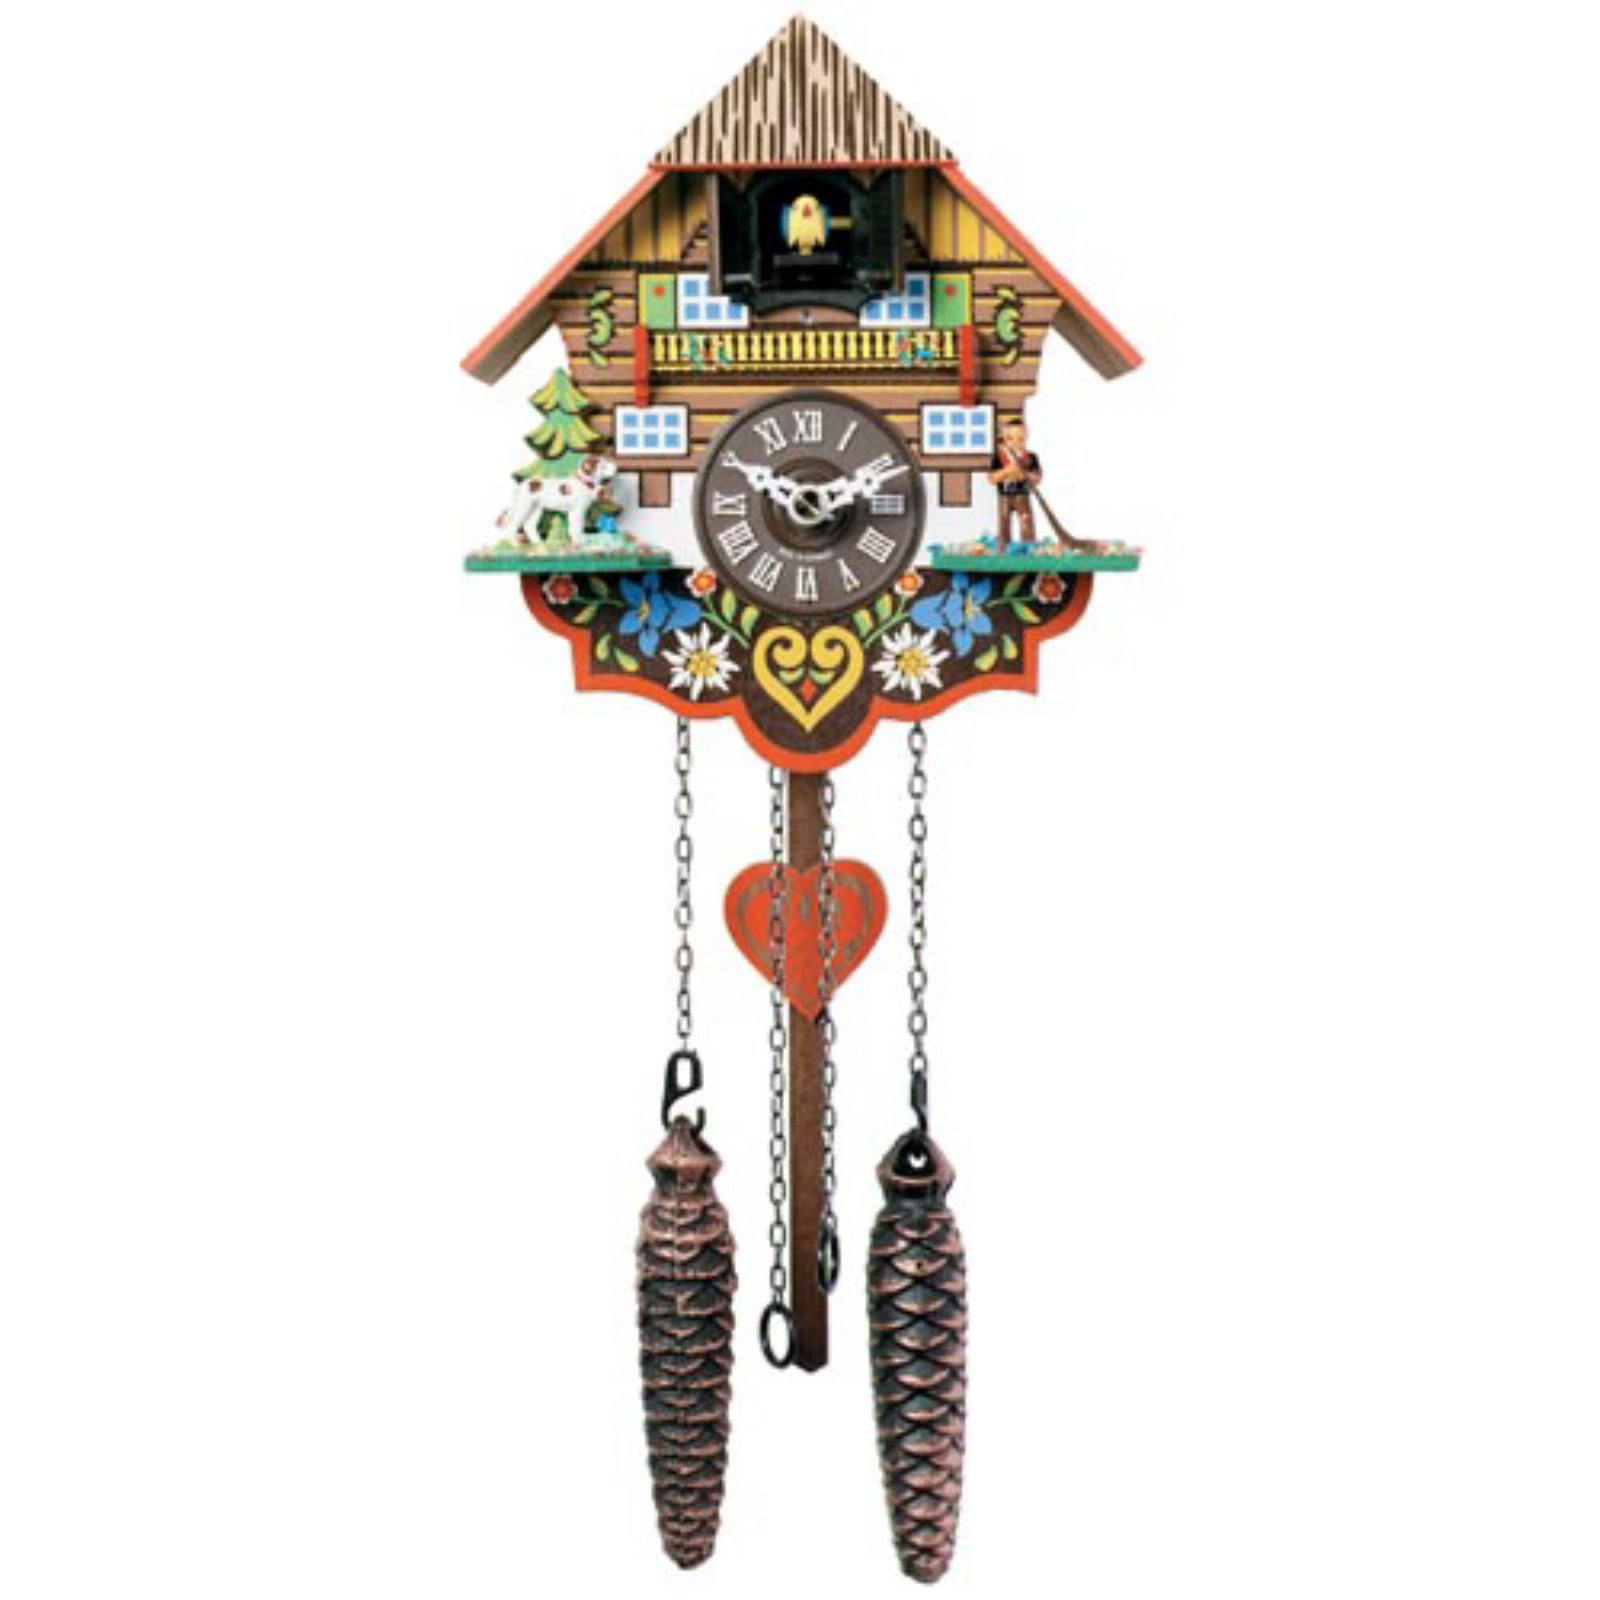 16 Inch Black Forest Saint Bernard with Alpine Horner Player Cuckoo Clock by River City Clocks